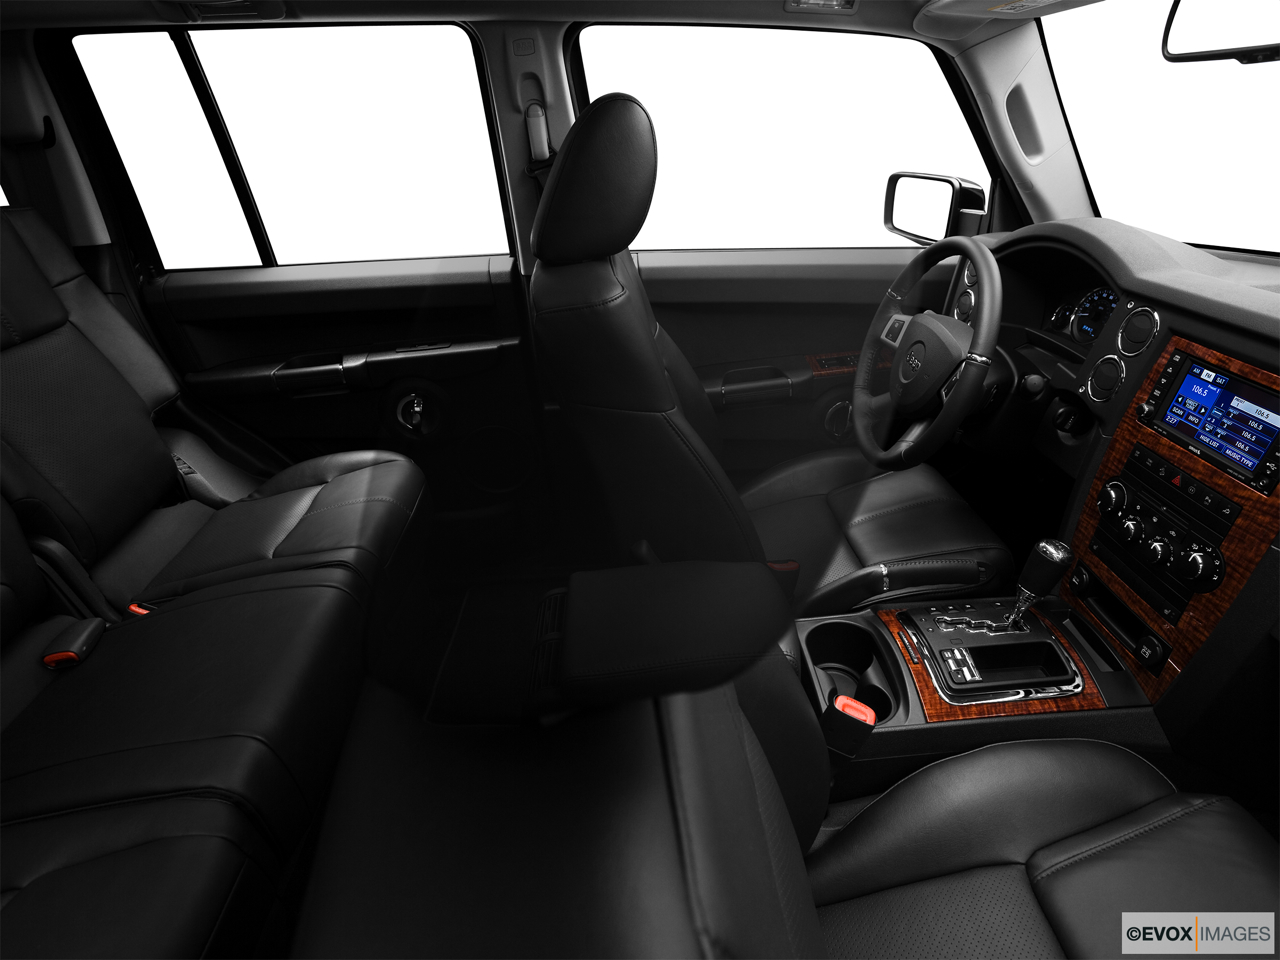 2010 Jeep Commander Limited Fake Buck Shot - Interior from Passenger B pillar.